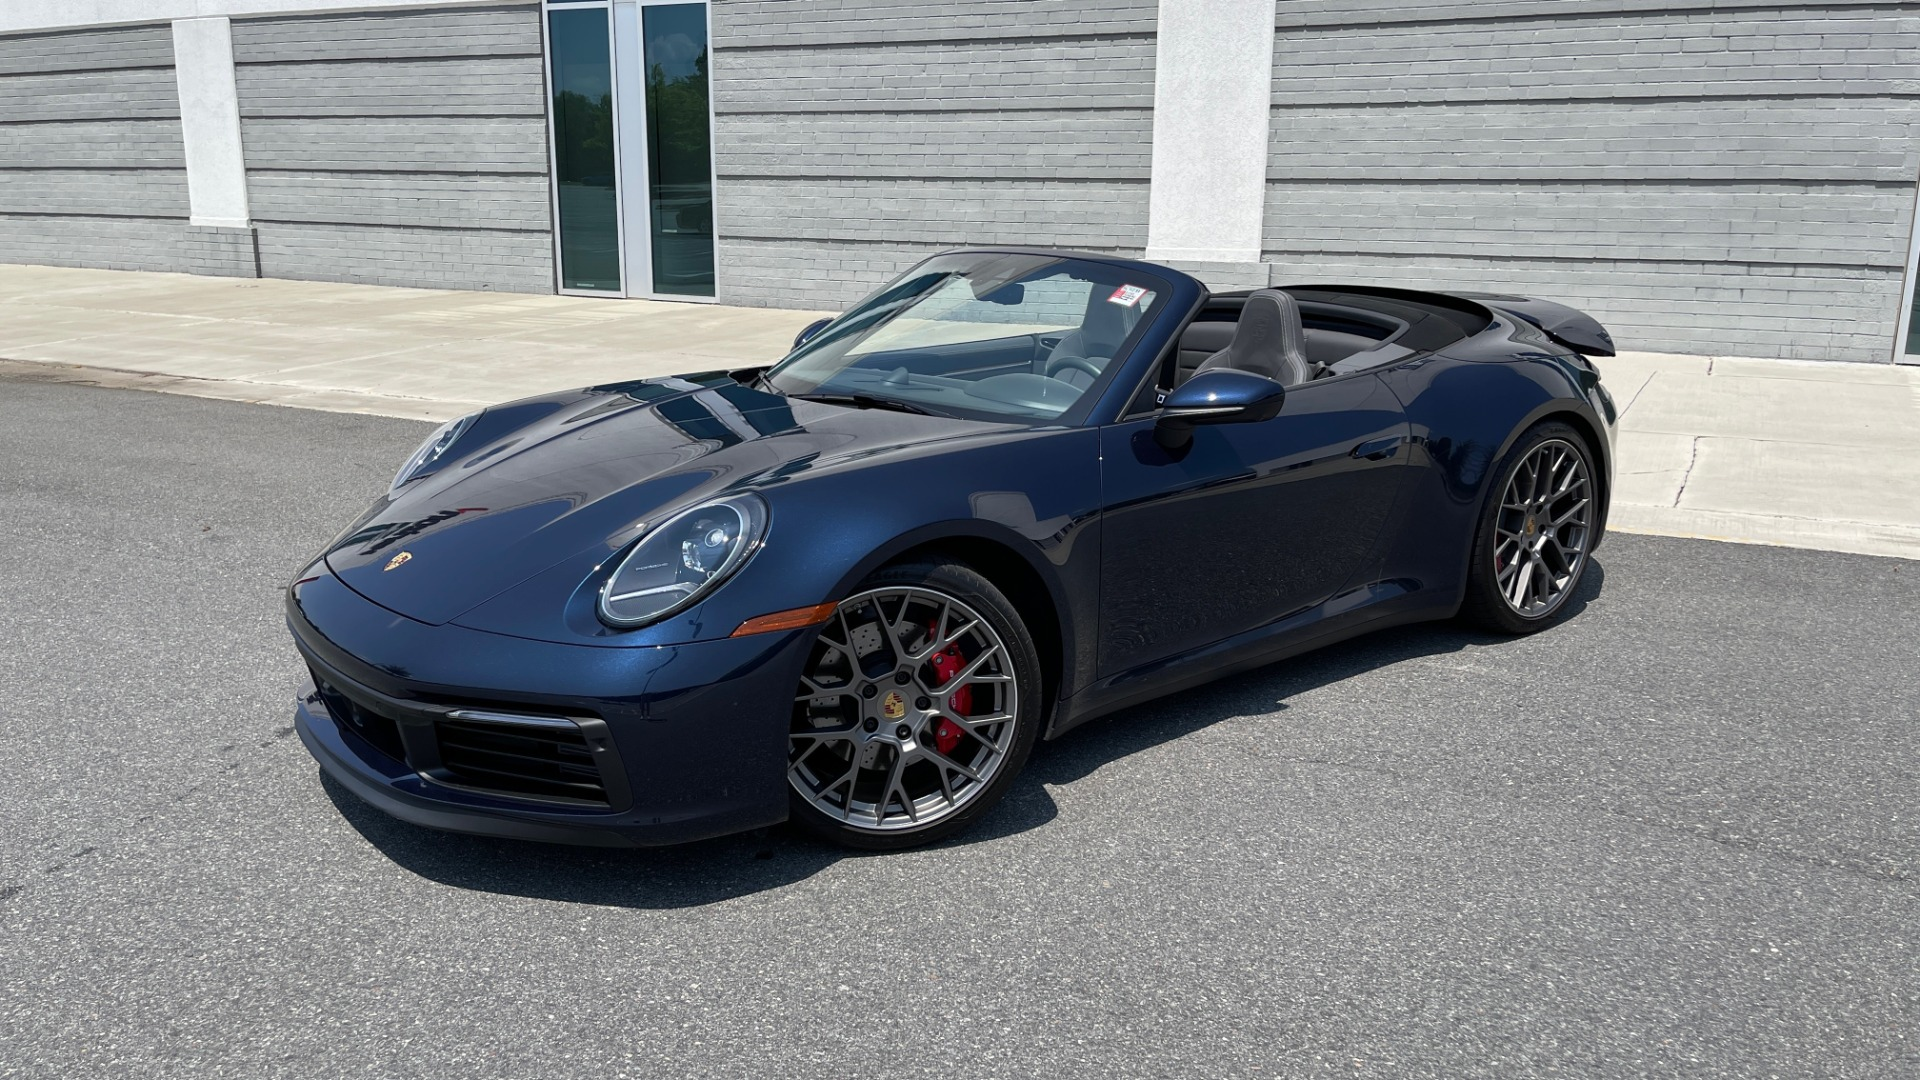 Used 2020 Porsche 911 CARRERA S CABRIOLET PREMIUM SPORT / LCA / ACC / BOSE / REARVIEW for sale $159,995 at Formula Imports in Charlotte NC 28227 3